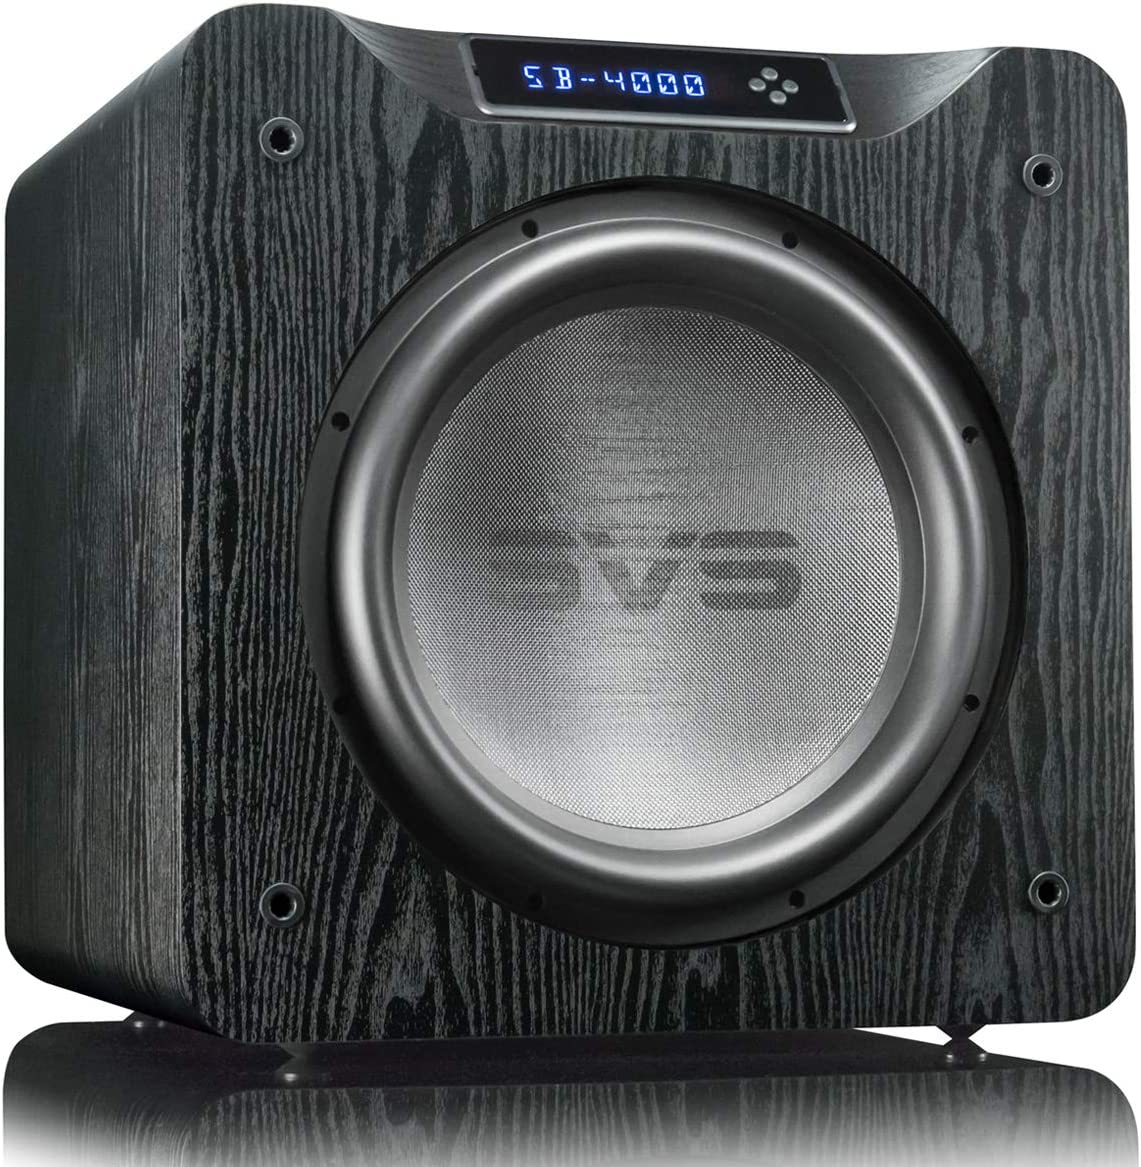 SVS SB-4000 Subwoofer (Black Ash) – 13.5-inch Driver, 1,200-Watts RMS, Sealed Cabinet, App Control